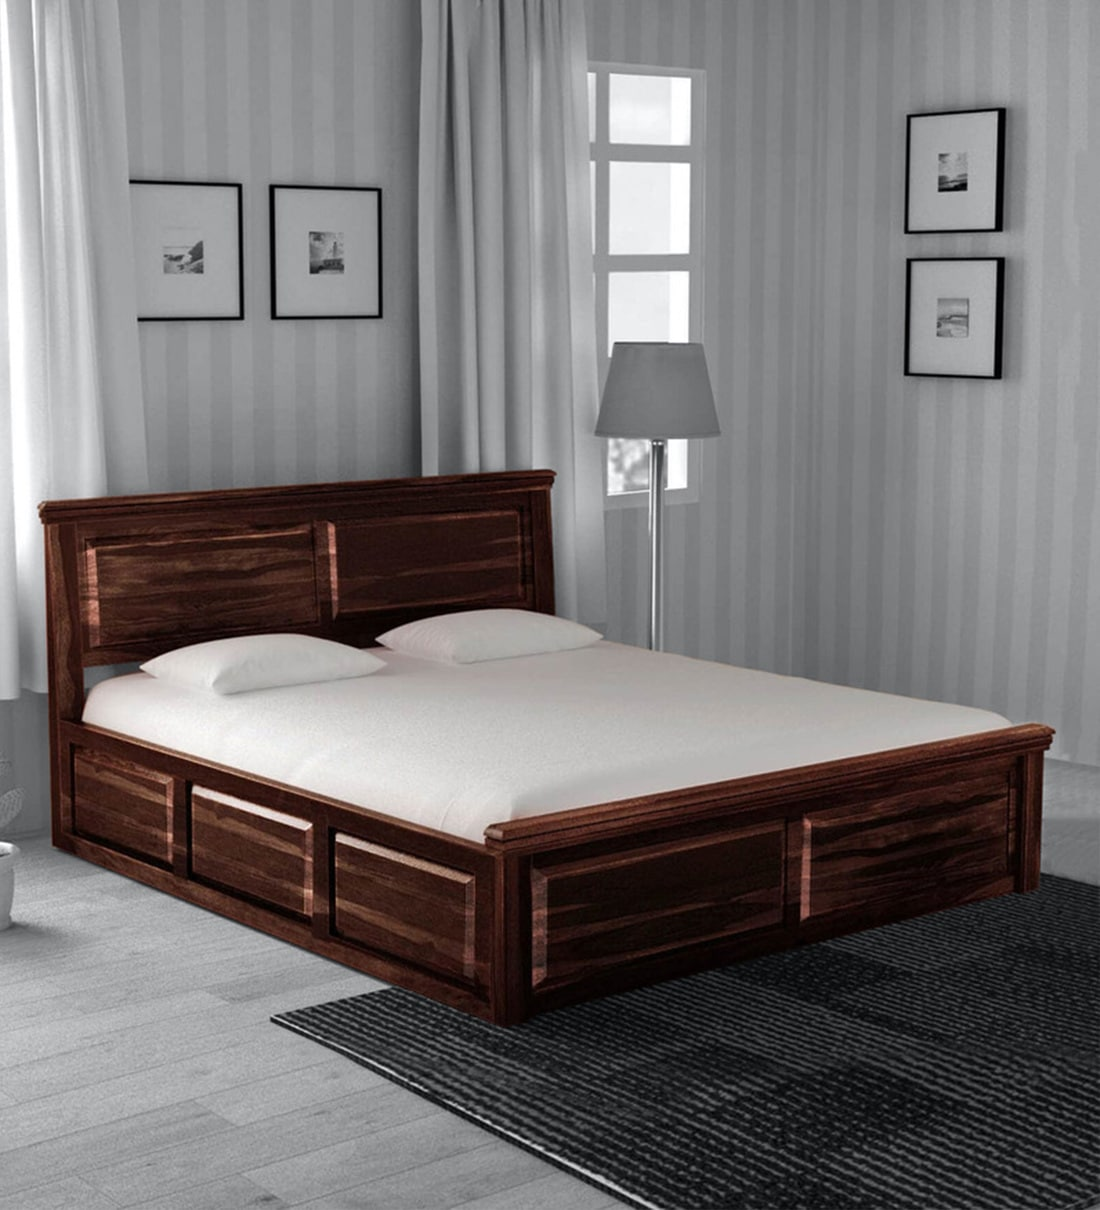 Buy Stanfield Solid Wood King Size Bed With Storage In Provincial Teak Finish Amberville By Pepperfry Online Traditional King Size Beds Beds Furniture Pepperfry Product